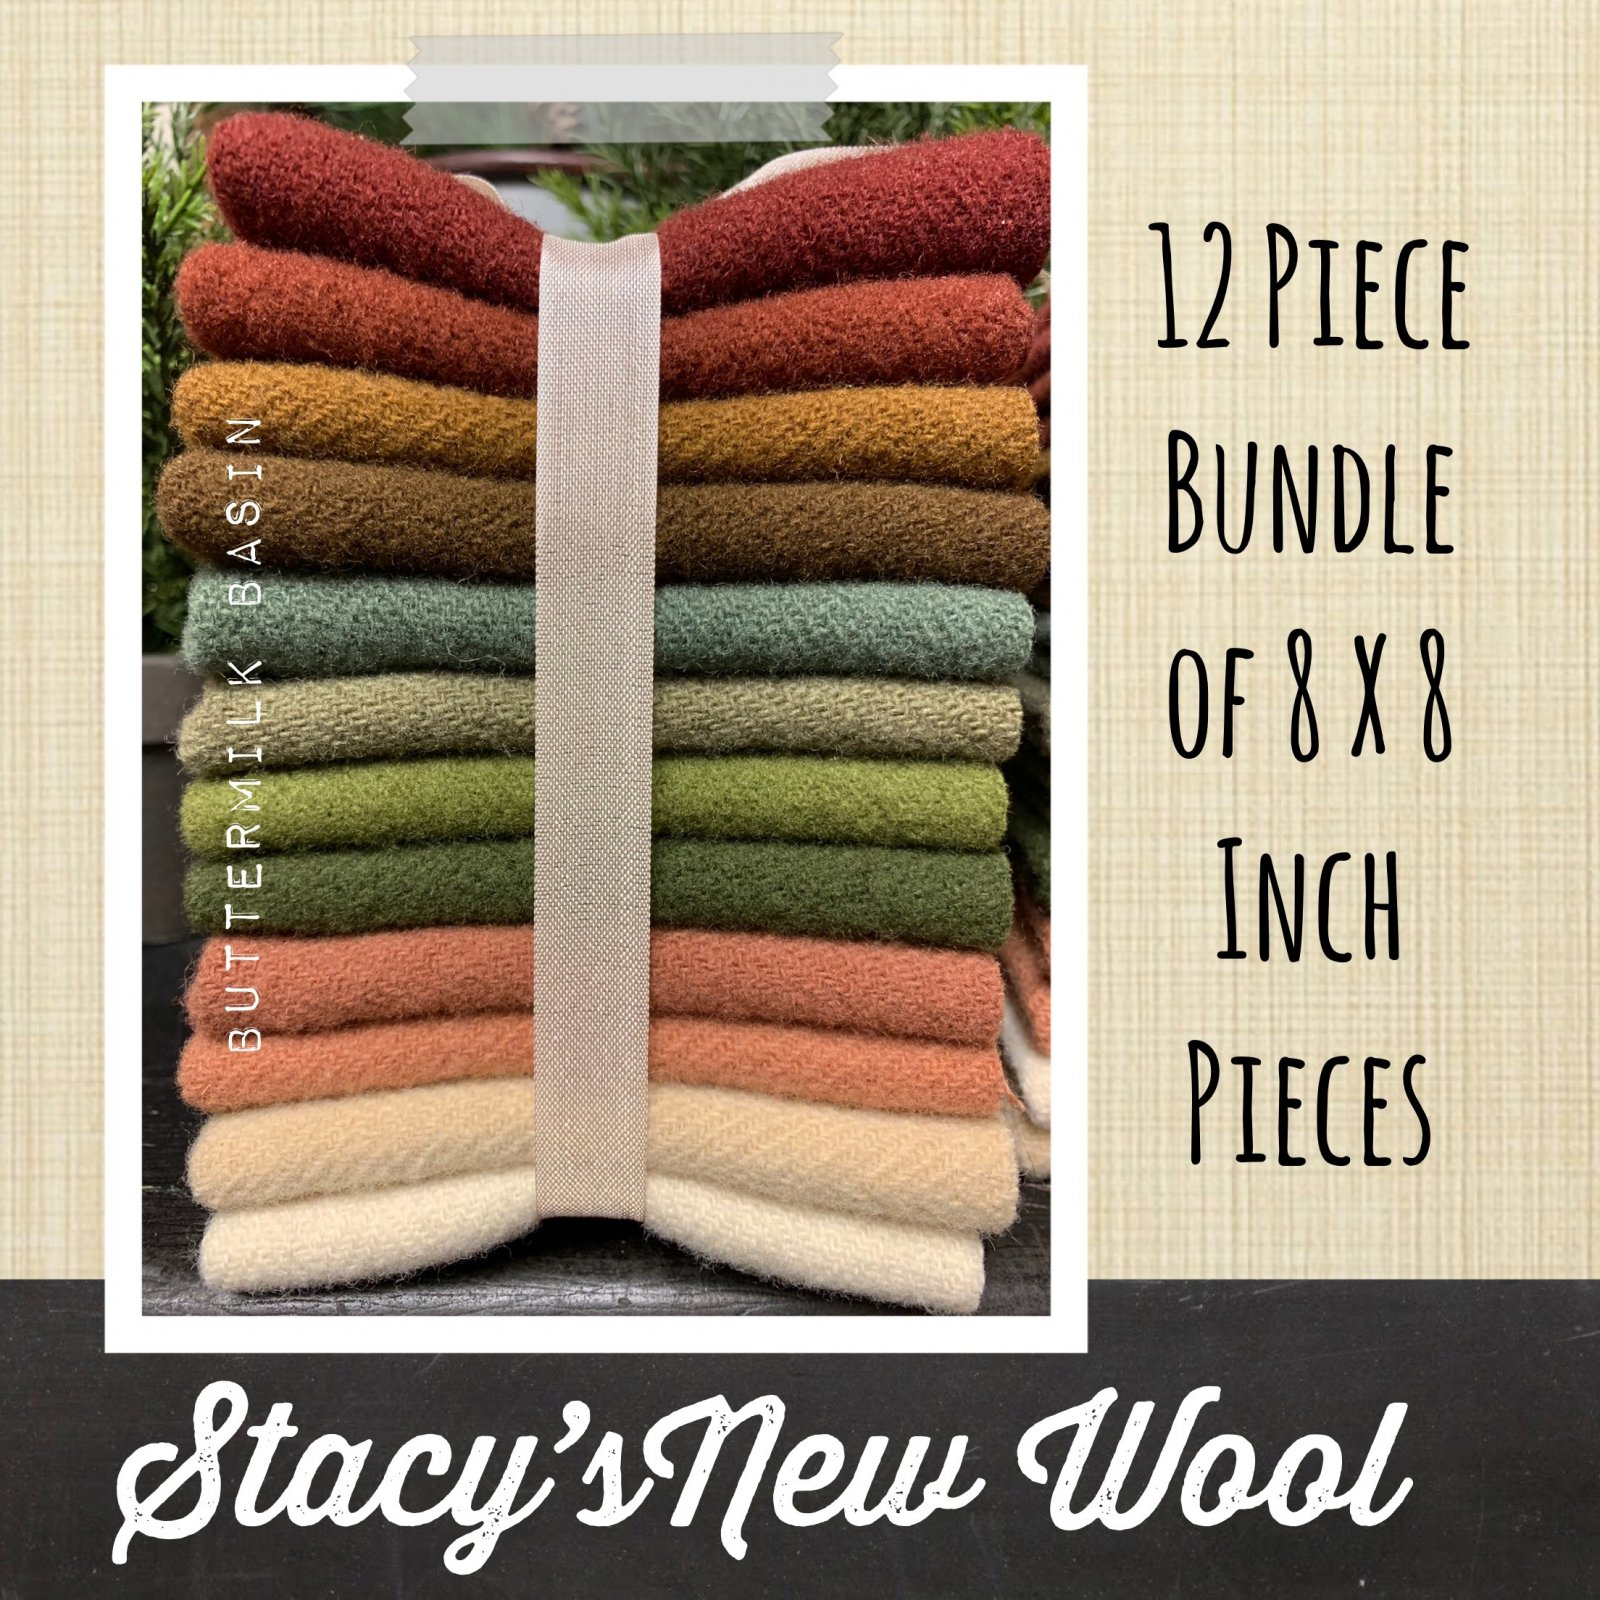 Stacy's Wool * 12 Piece Bundle - 8 x 8 Pieces